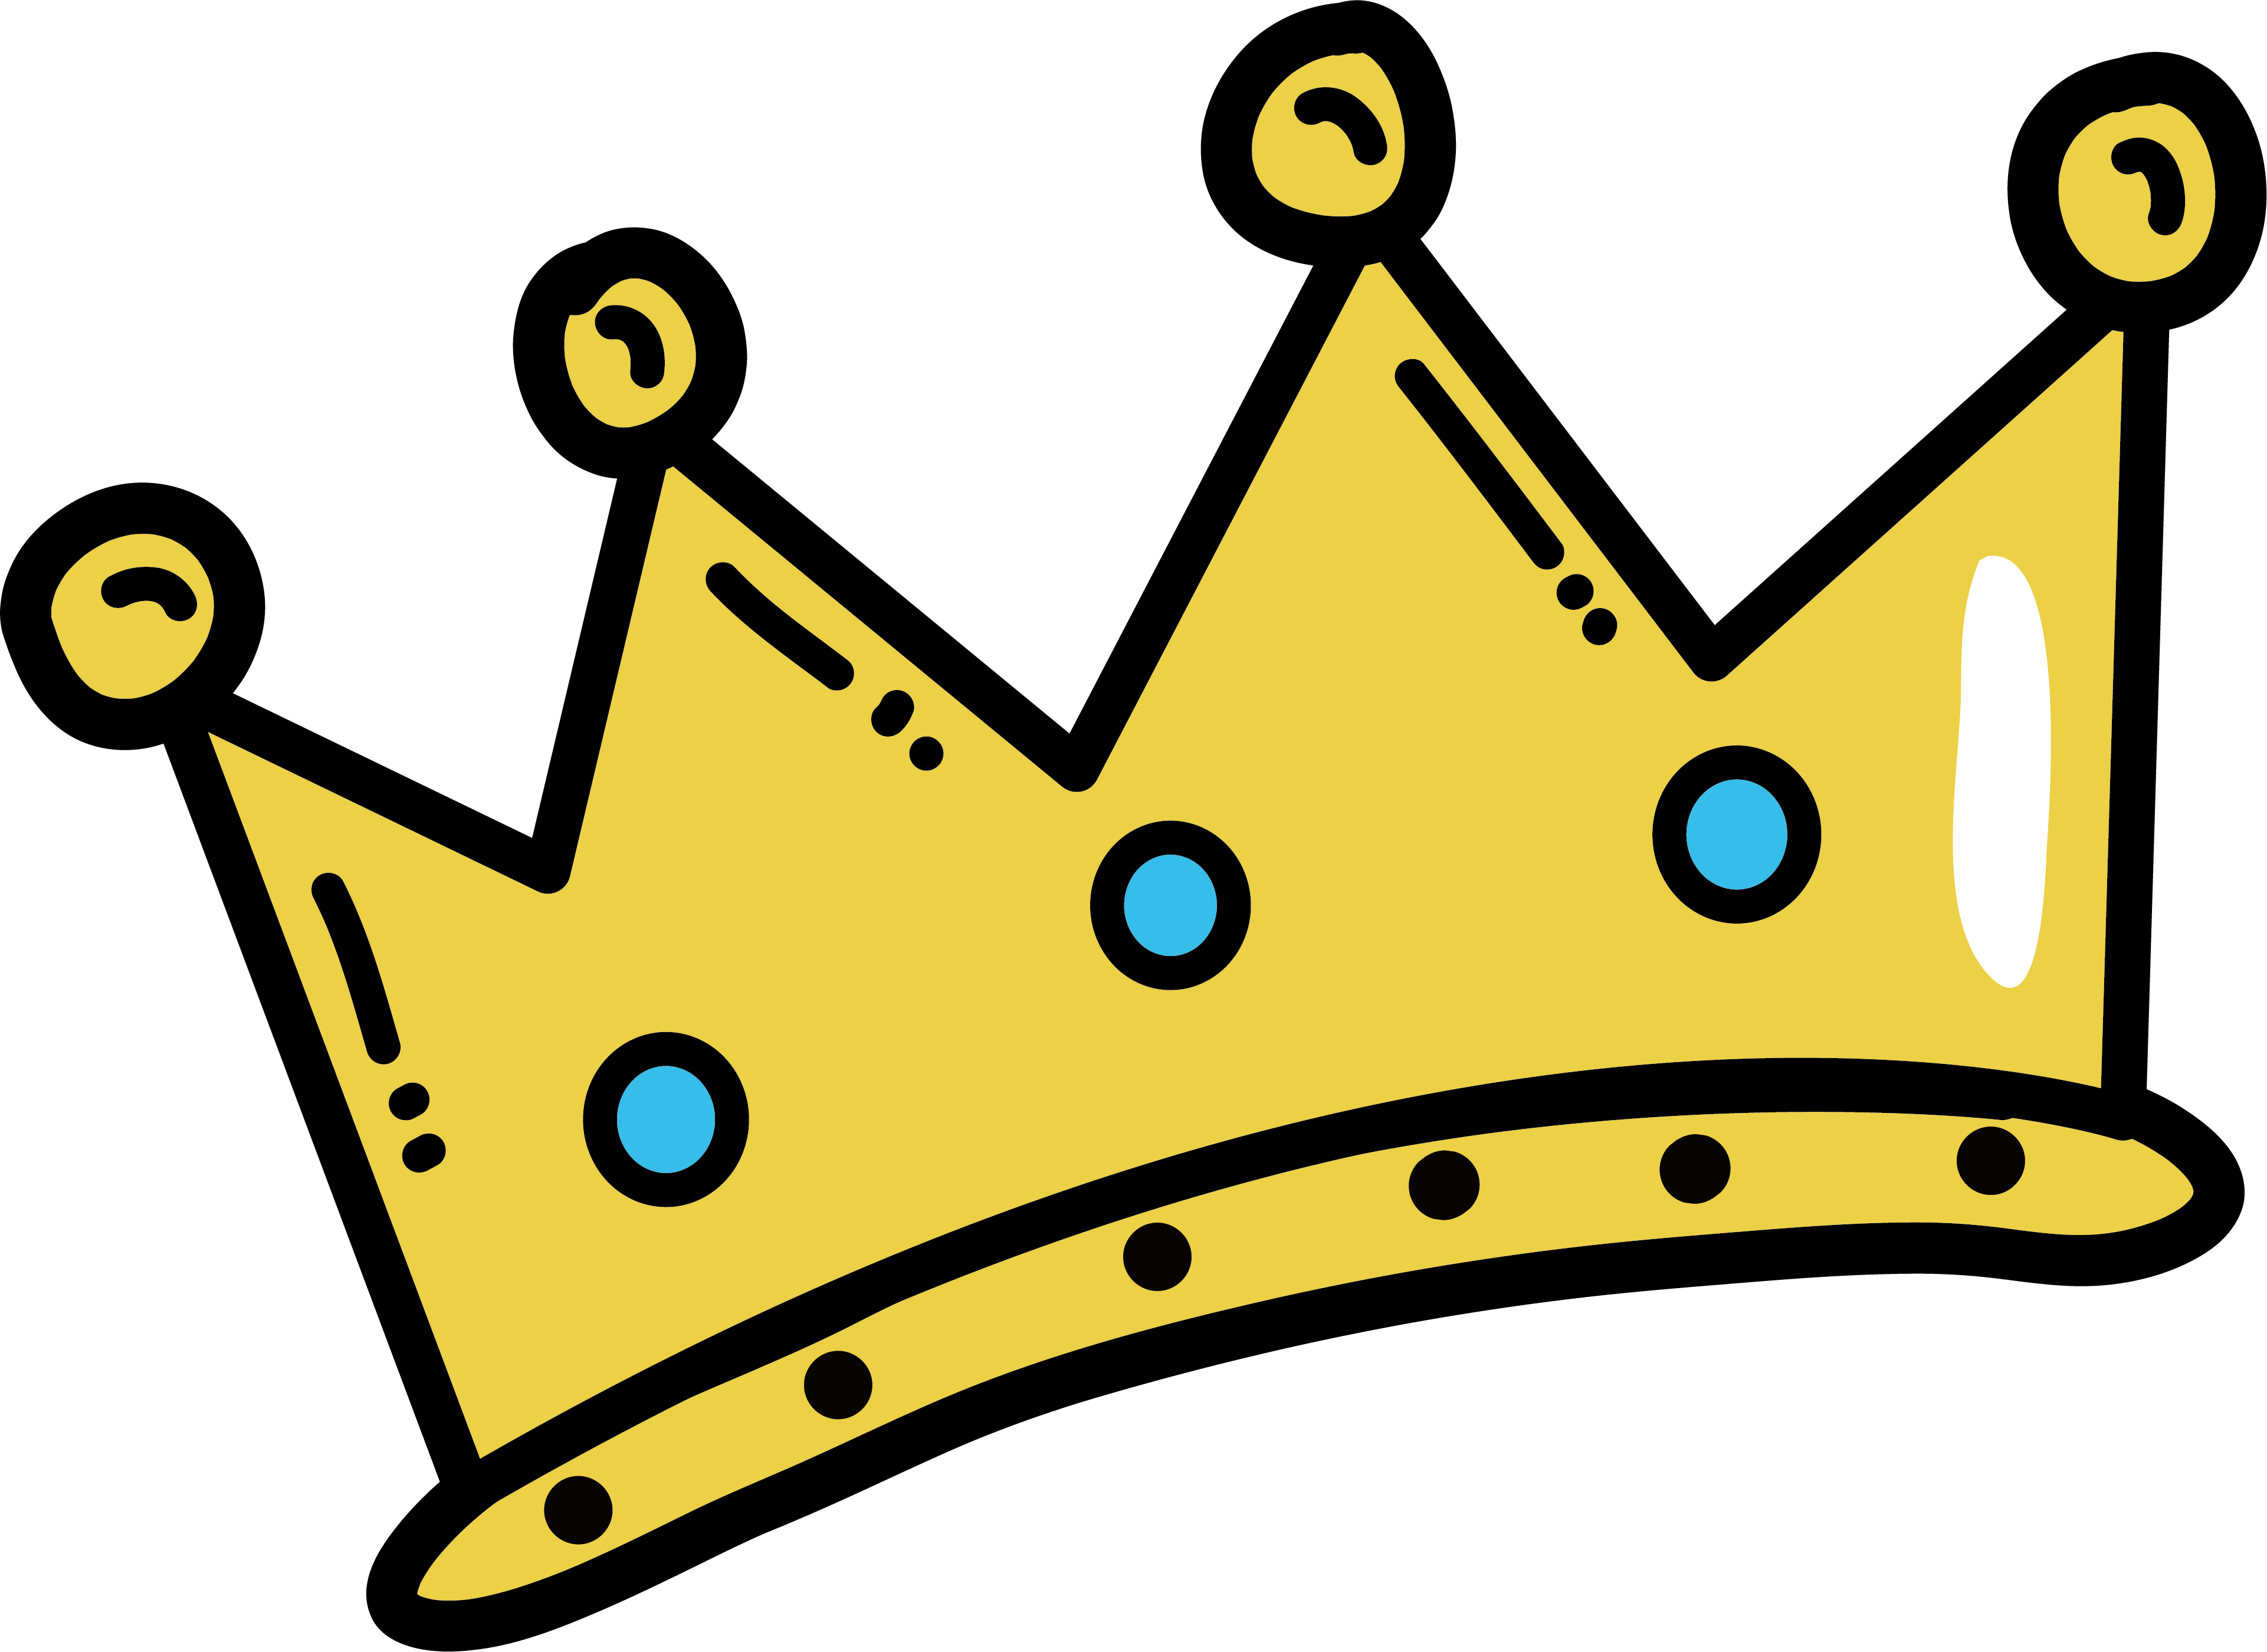 Cartoon crown png. Hand painted transprent free